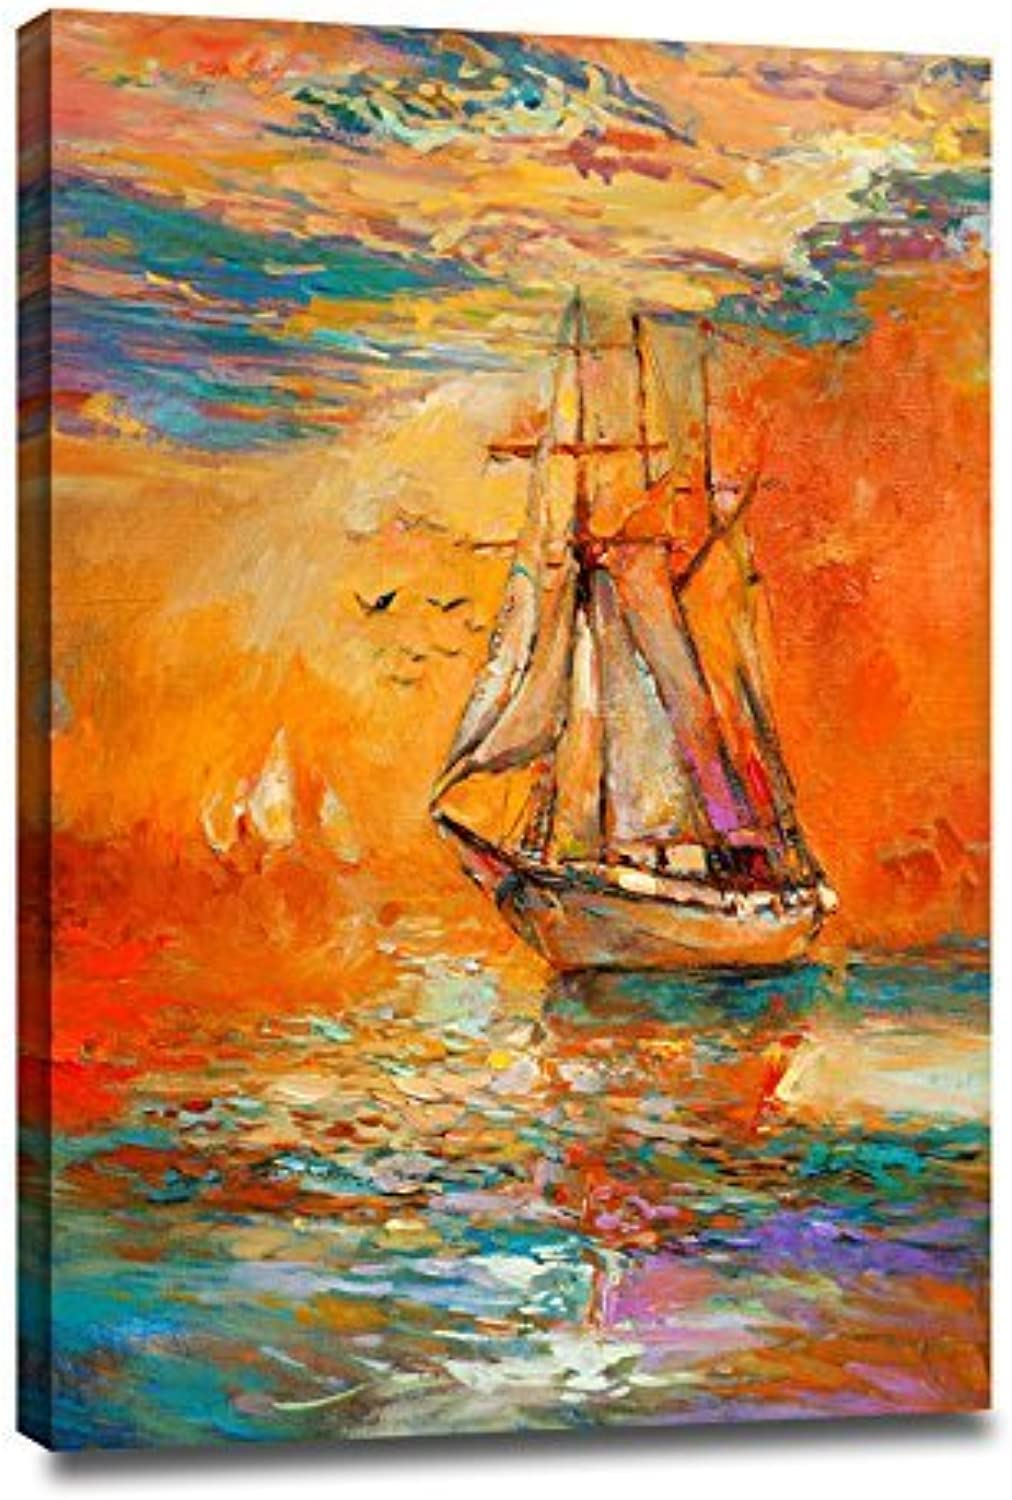 Donglin Art- The golden Sailboat, Framed Modern Abstract Seascape Oil Paintings on Canvas, Wall Art for Living Room, Office Decor. 2435 inch 6090 cm